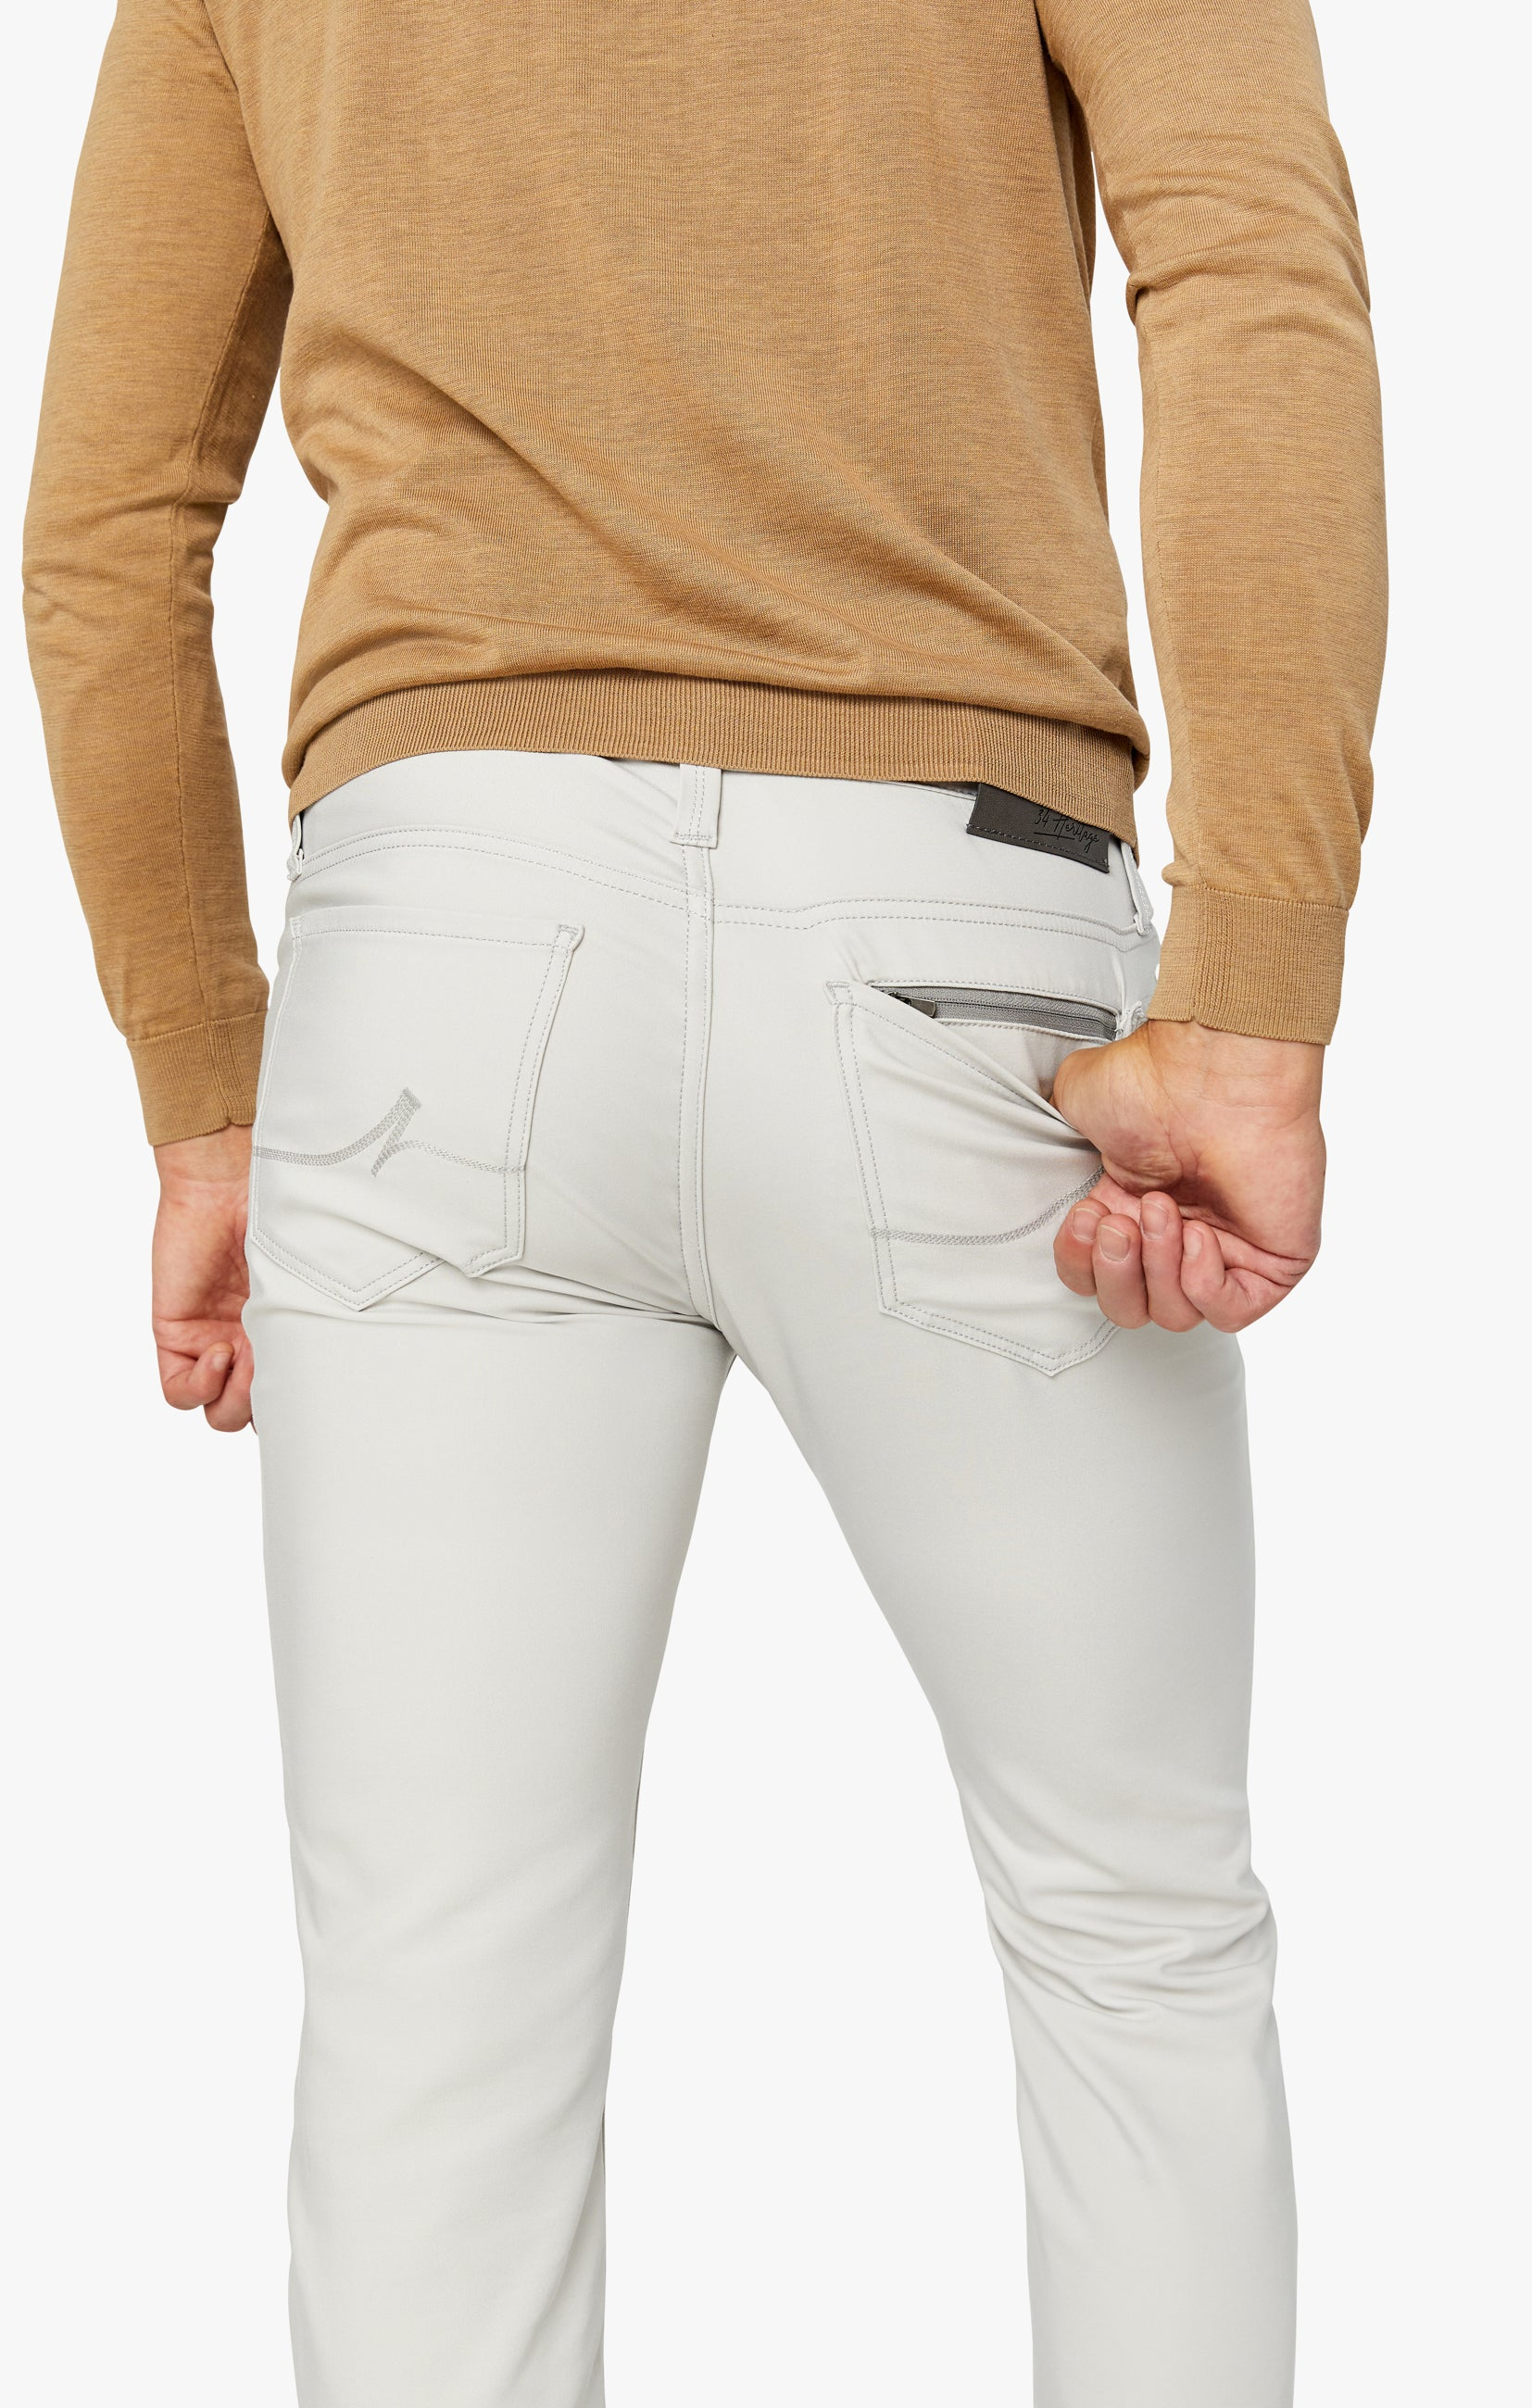 Charisma Classic Fit Jeans in Pearl Commuter Image 8